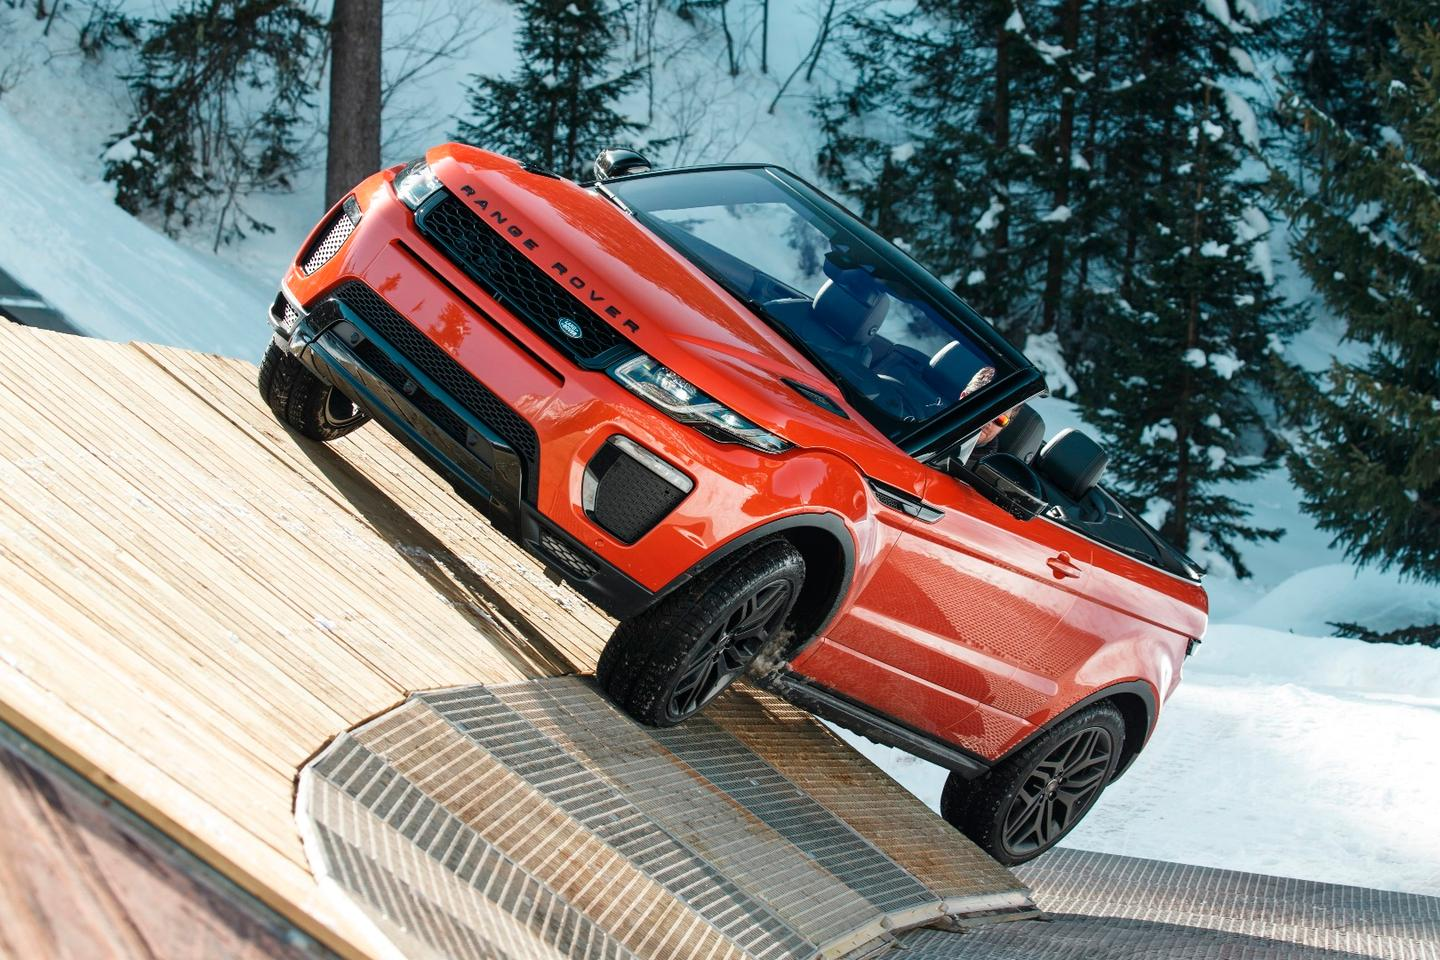 The Evoque Convertible shows its ability to handle a lean angle approach